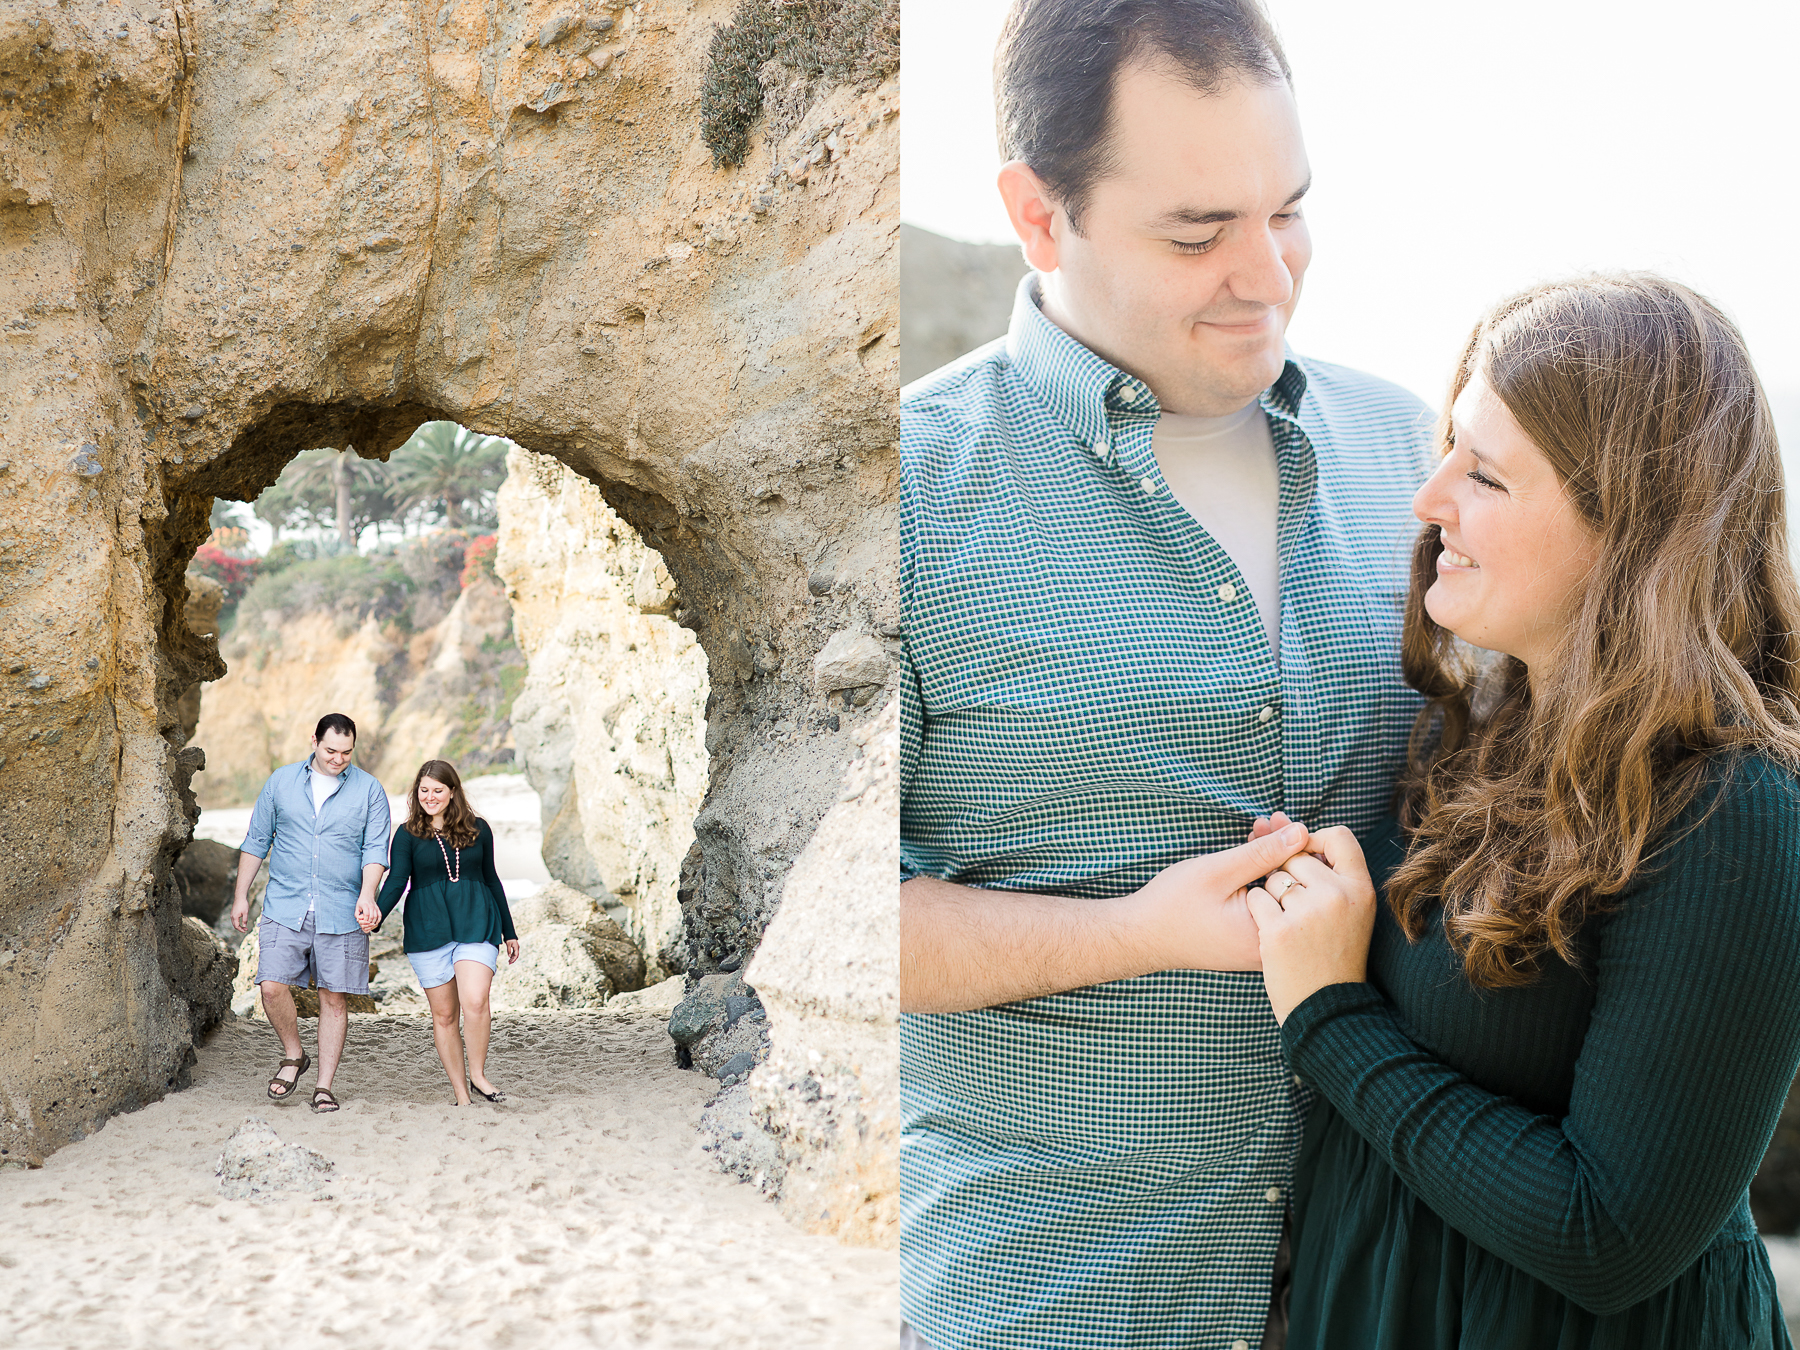 Destination engagement session by Laramie based photographer, Megan Lee Photography